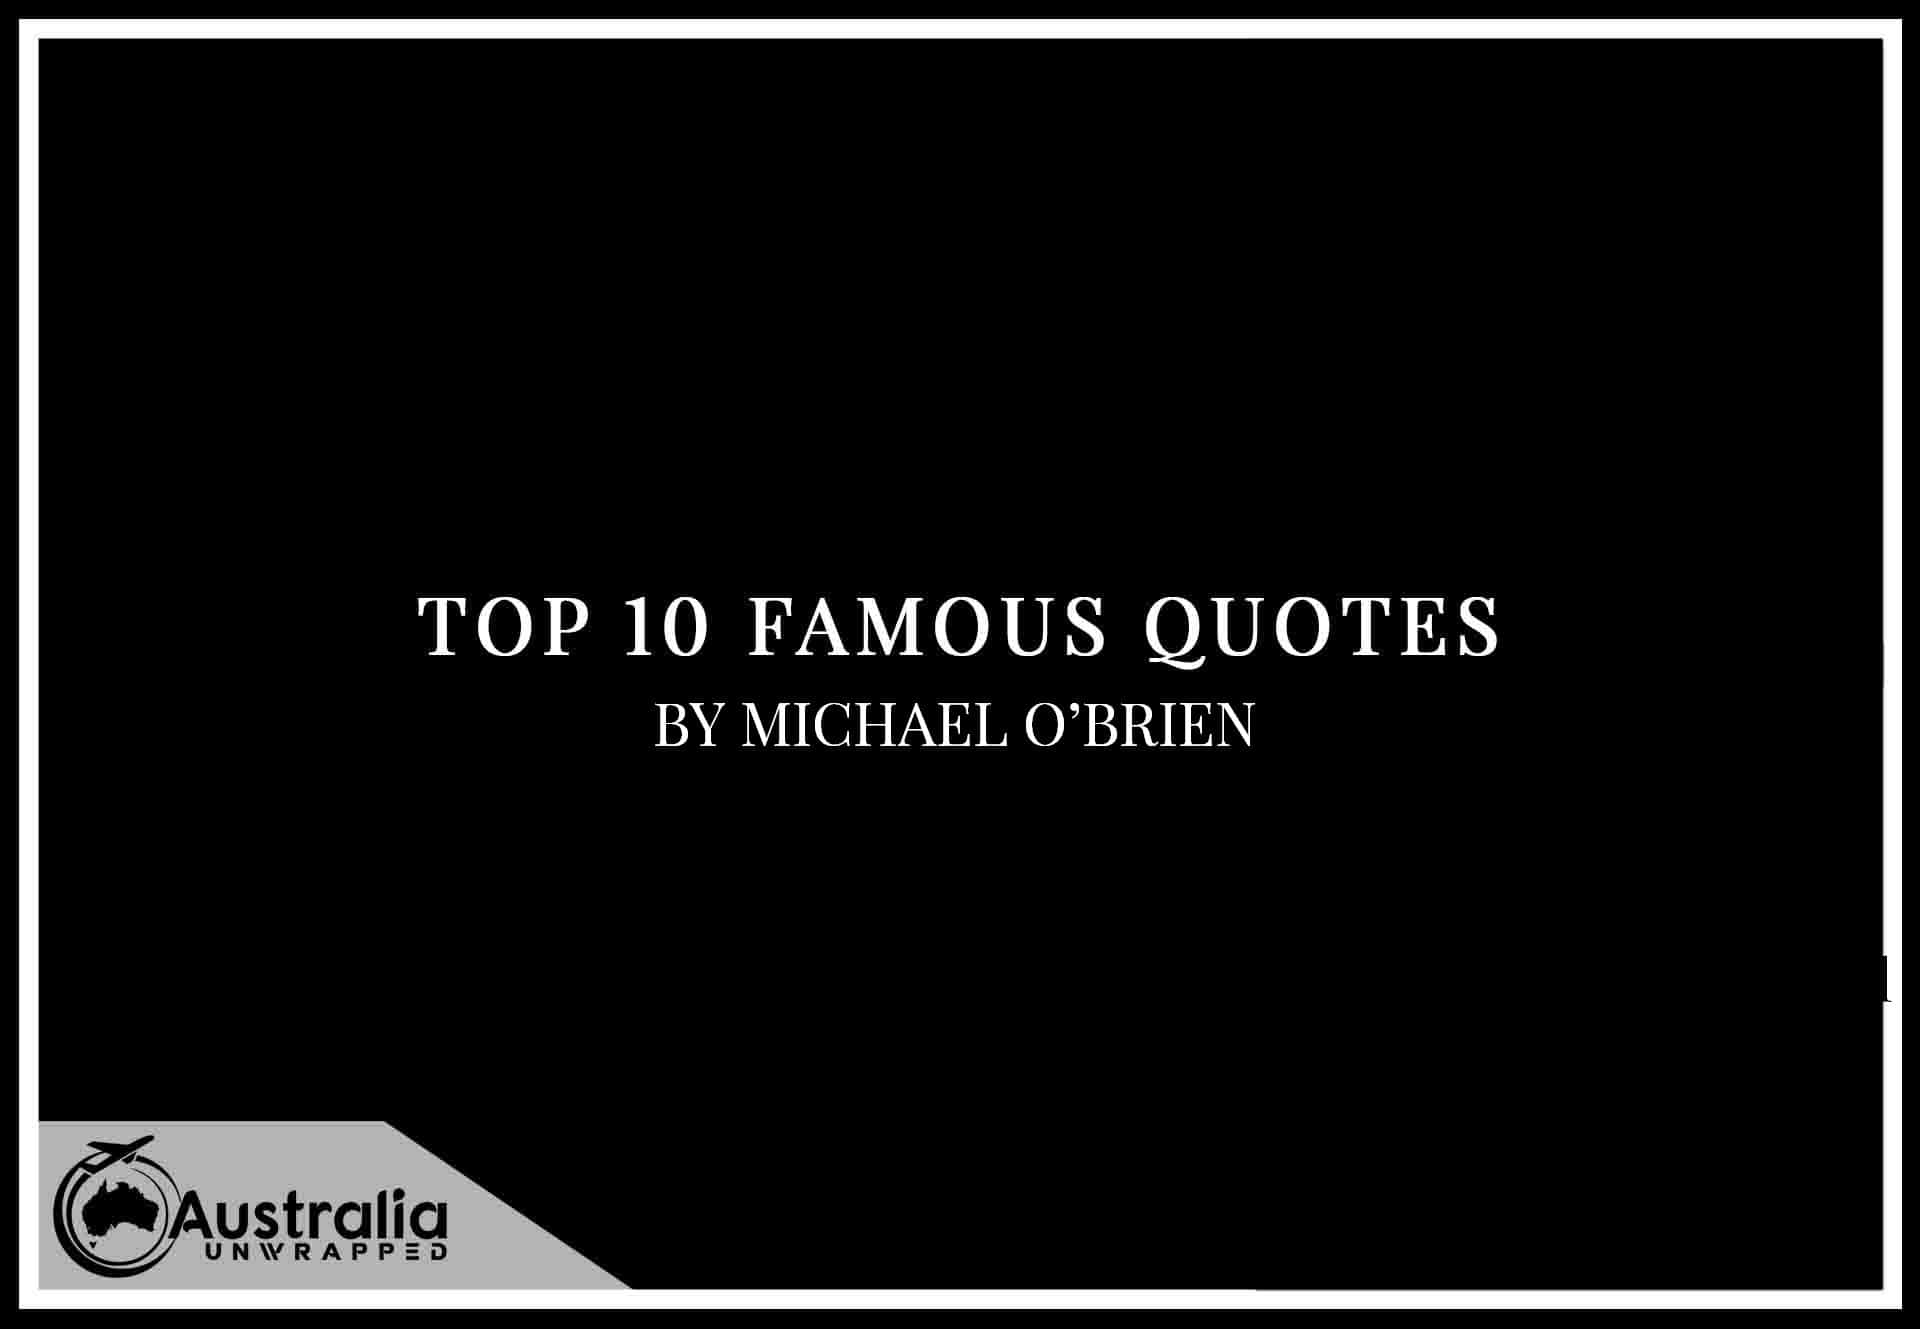 Top 10 Famous Quotes by Author Michael D. O'Brien